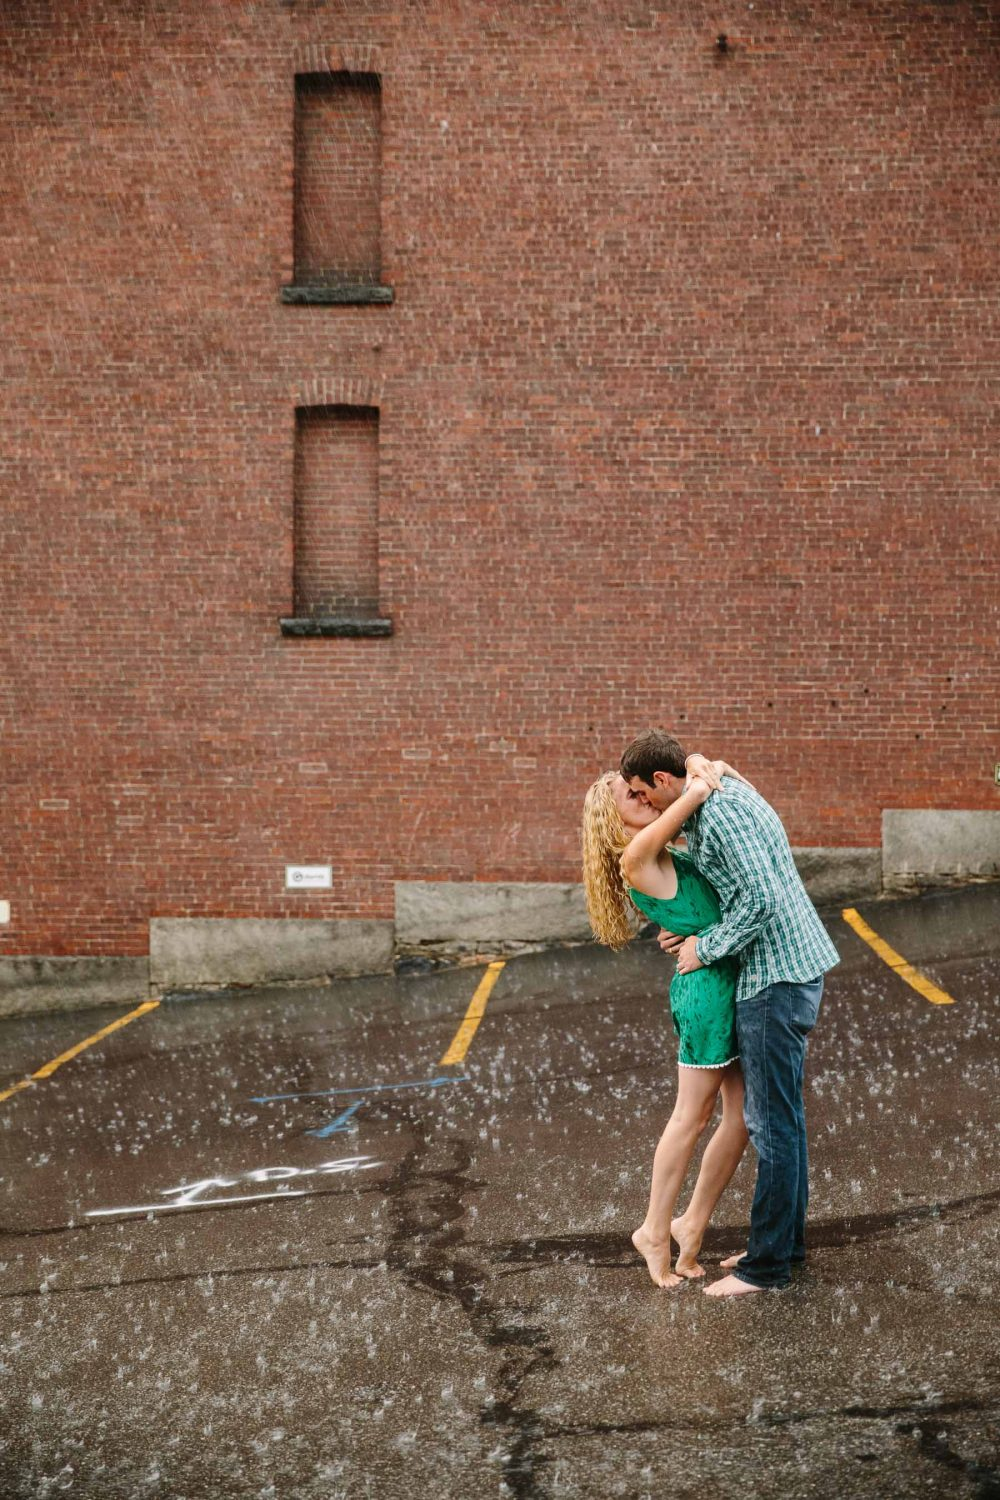 016-summer-manchester-nh-rain-engagement